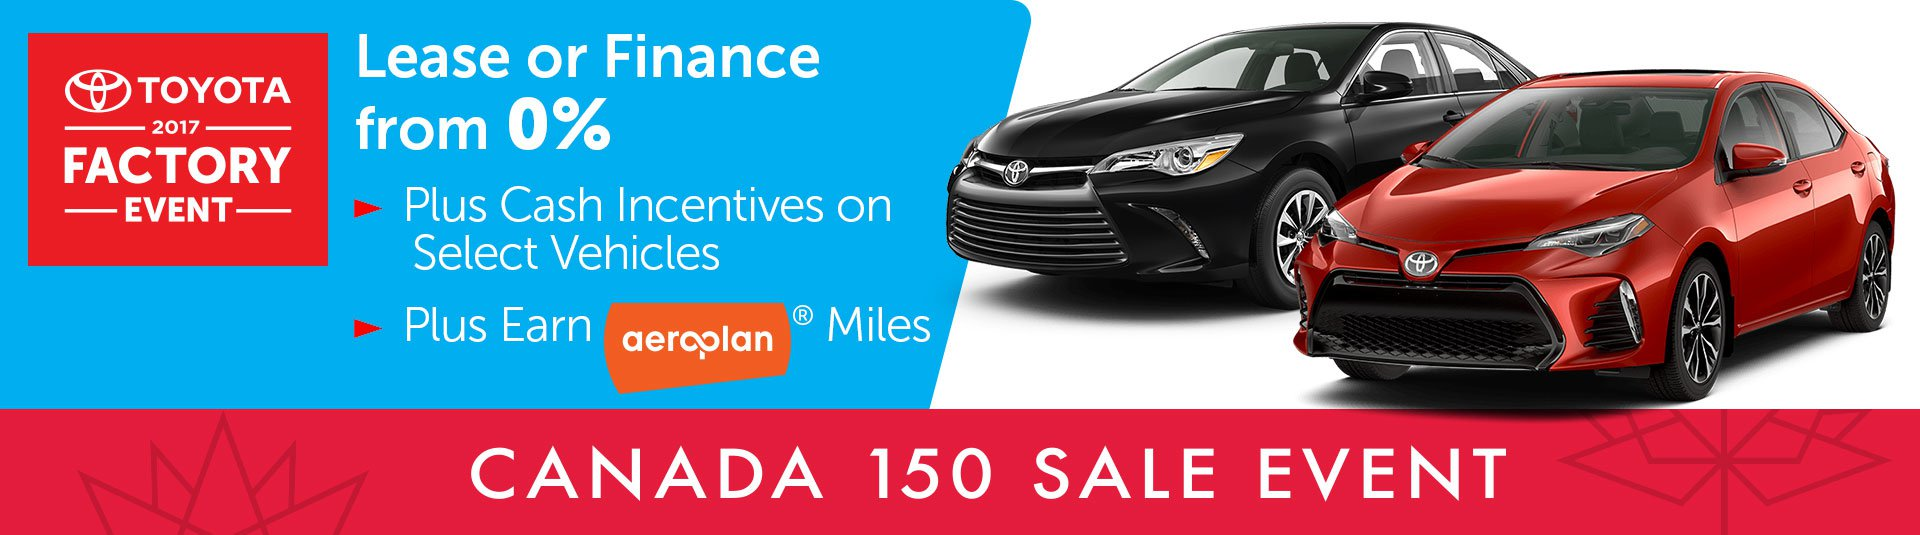 Search Our Inventory Of New Cars For Humberview Group